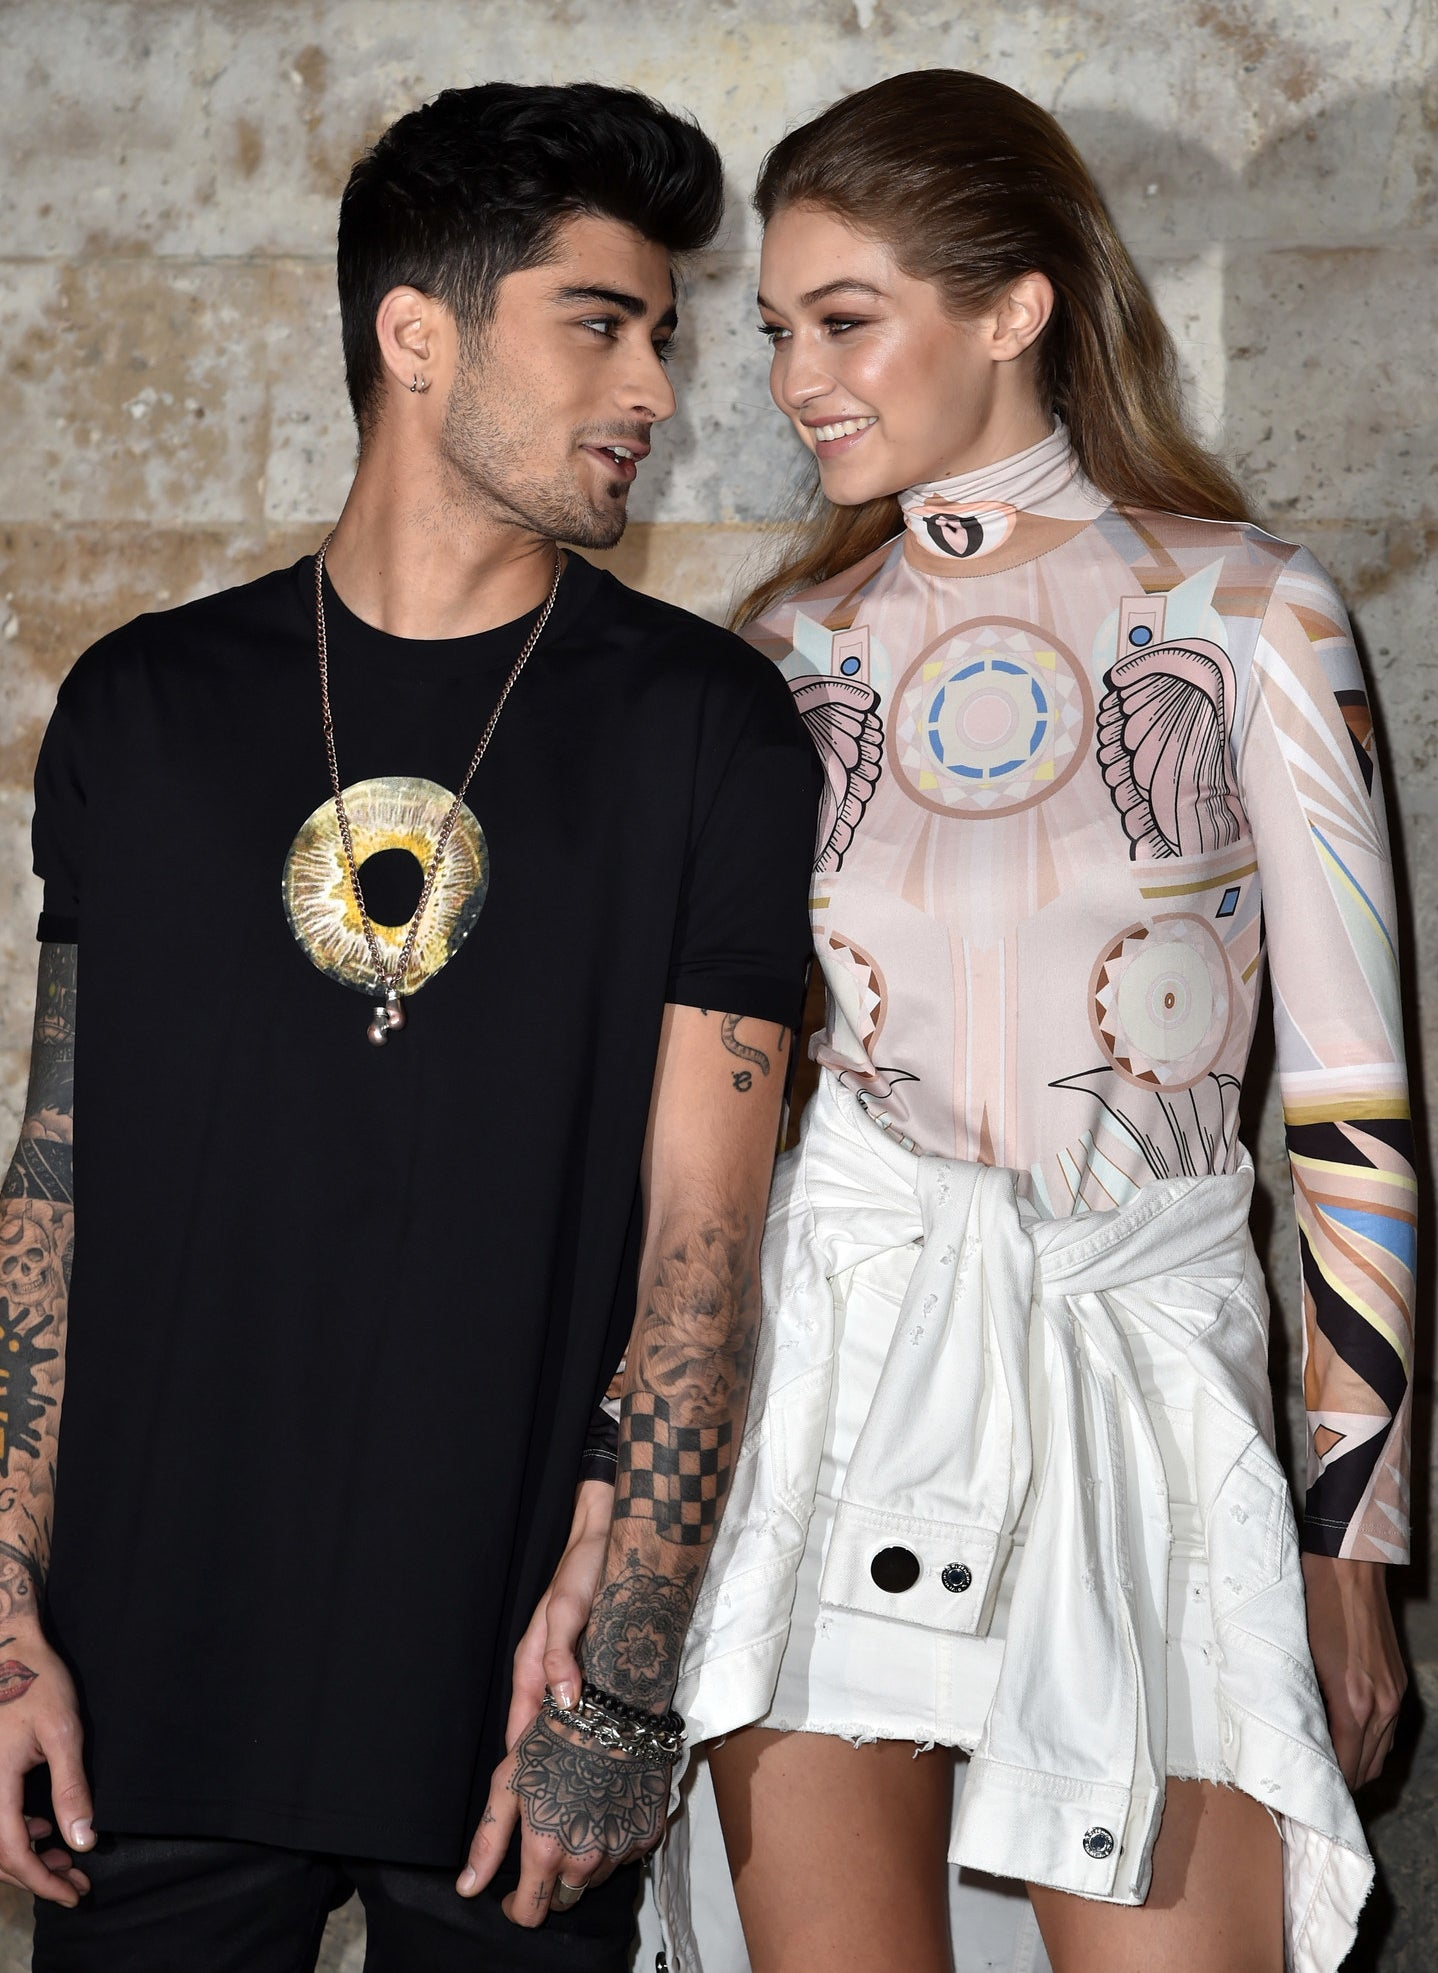 Exactly one month ago, Zayn Malik and Gigi Hadid announced that, after two years of dating, they were calling it quits.